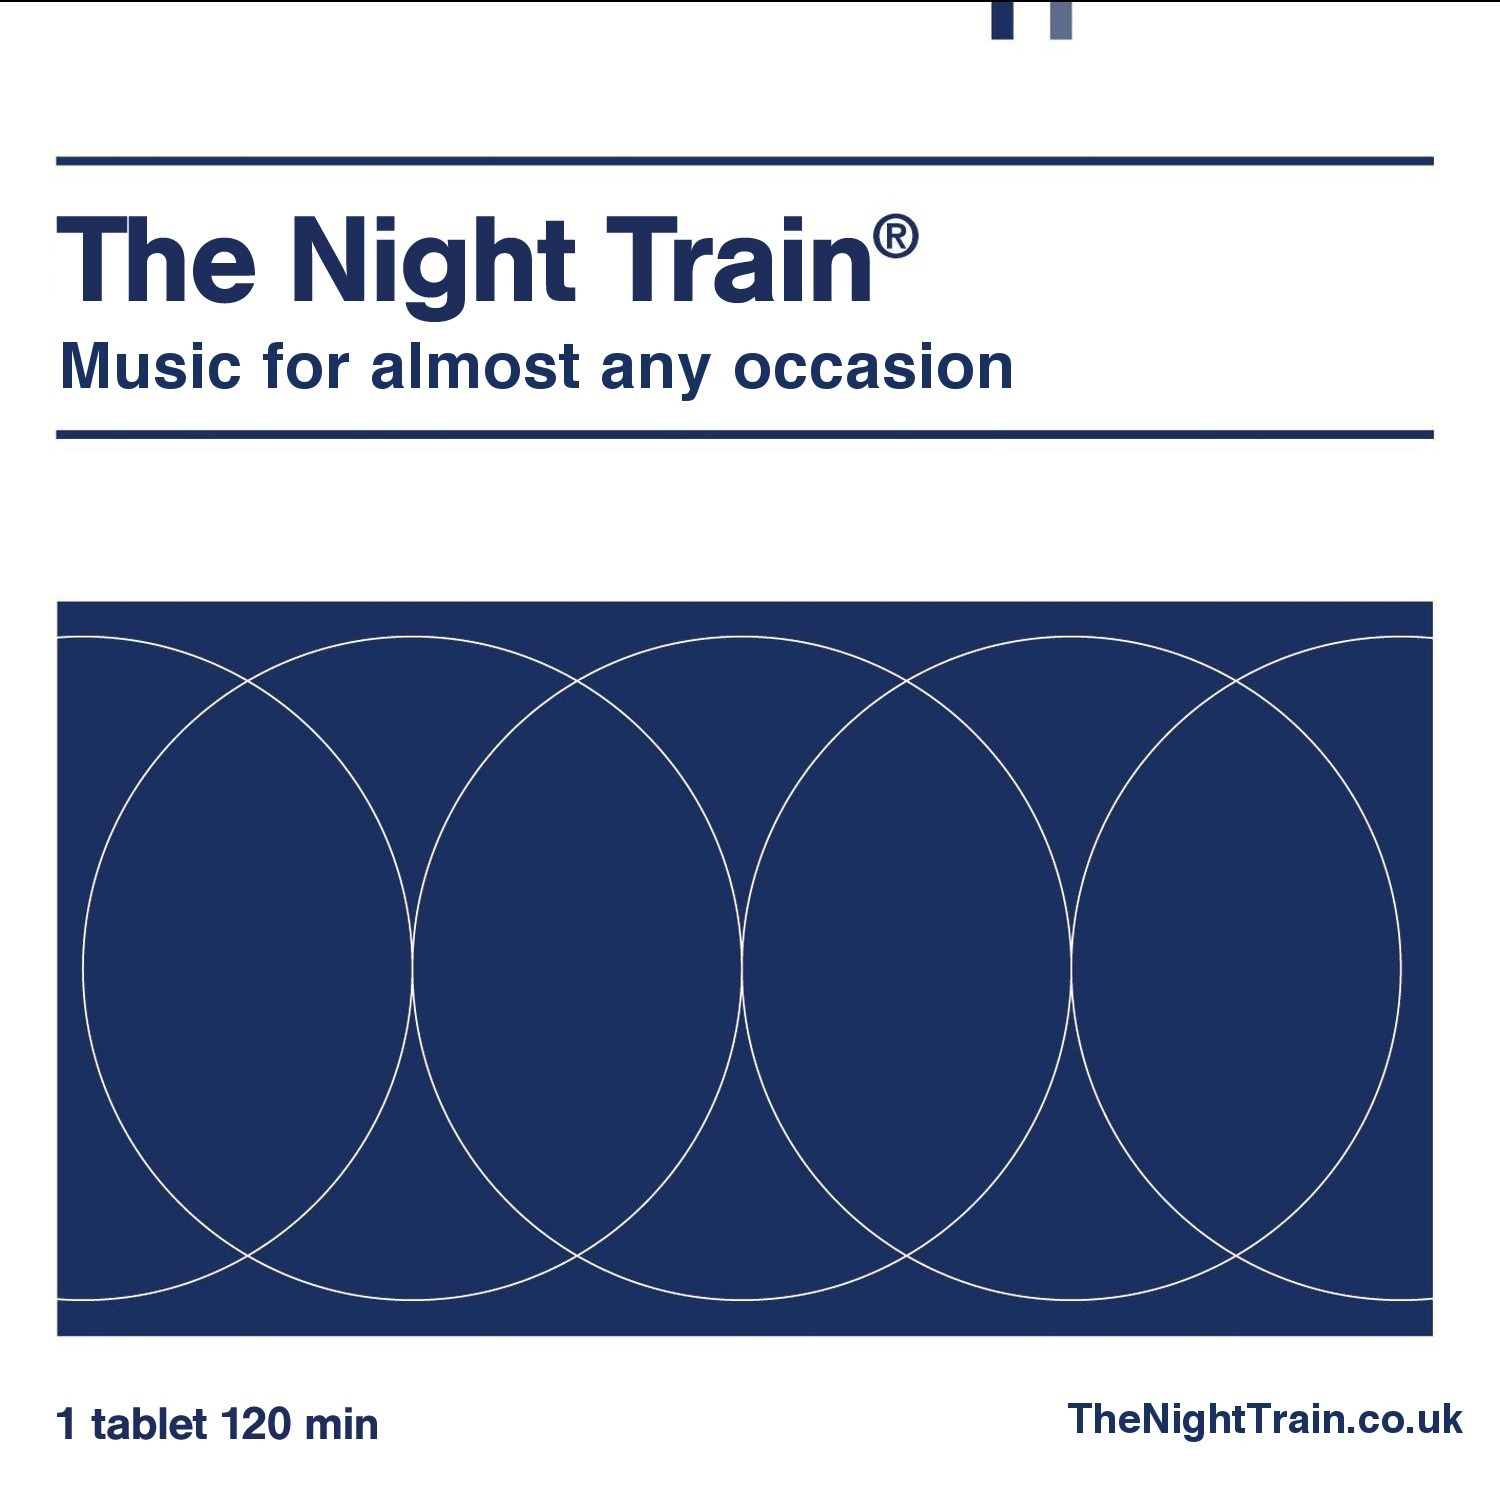 The Night Train®